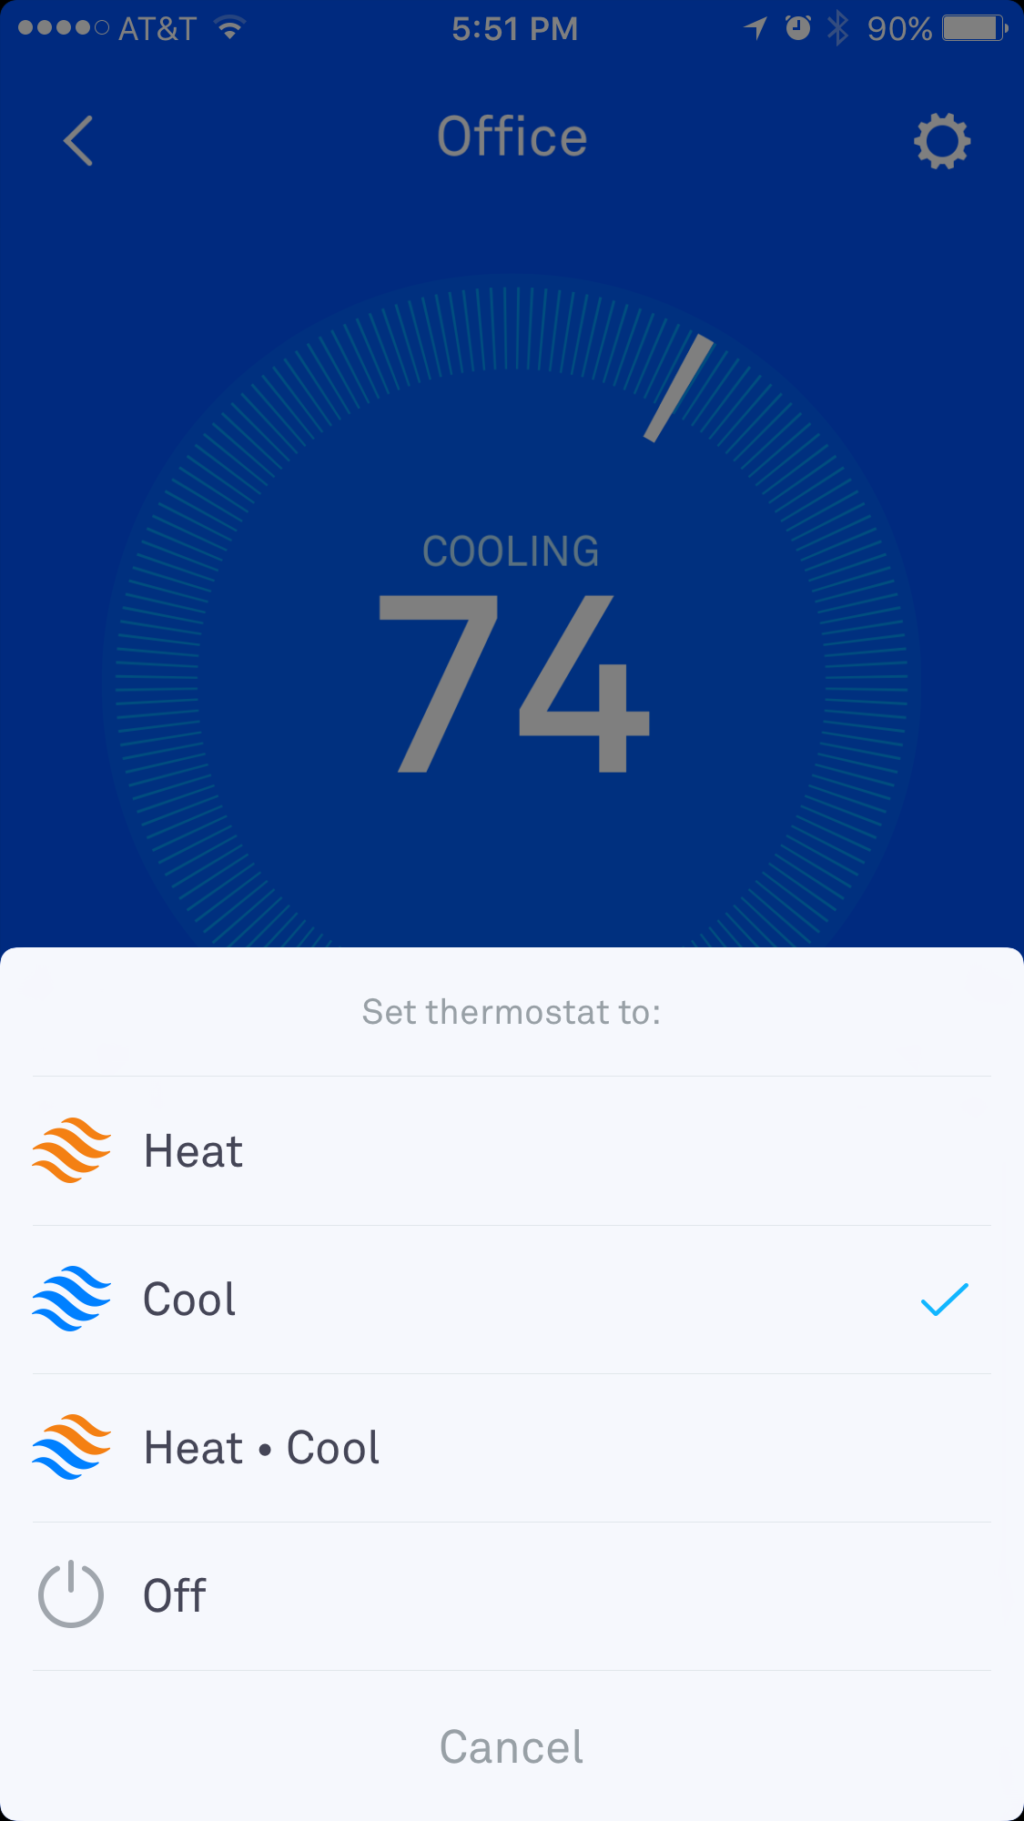 Prep Your Home for Vacation with the Nest Learning Thermostat at Best Buy